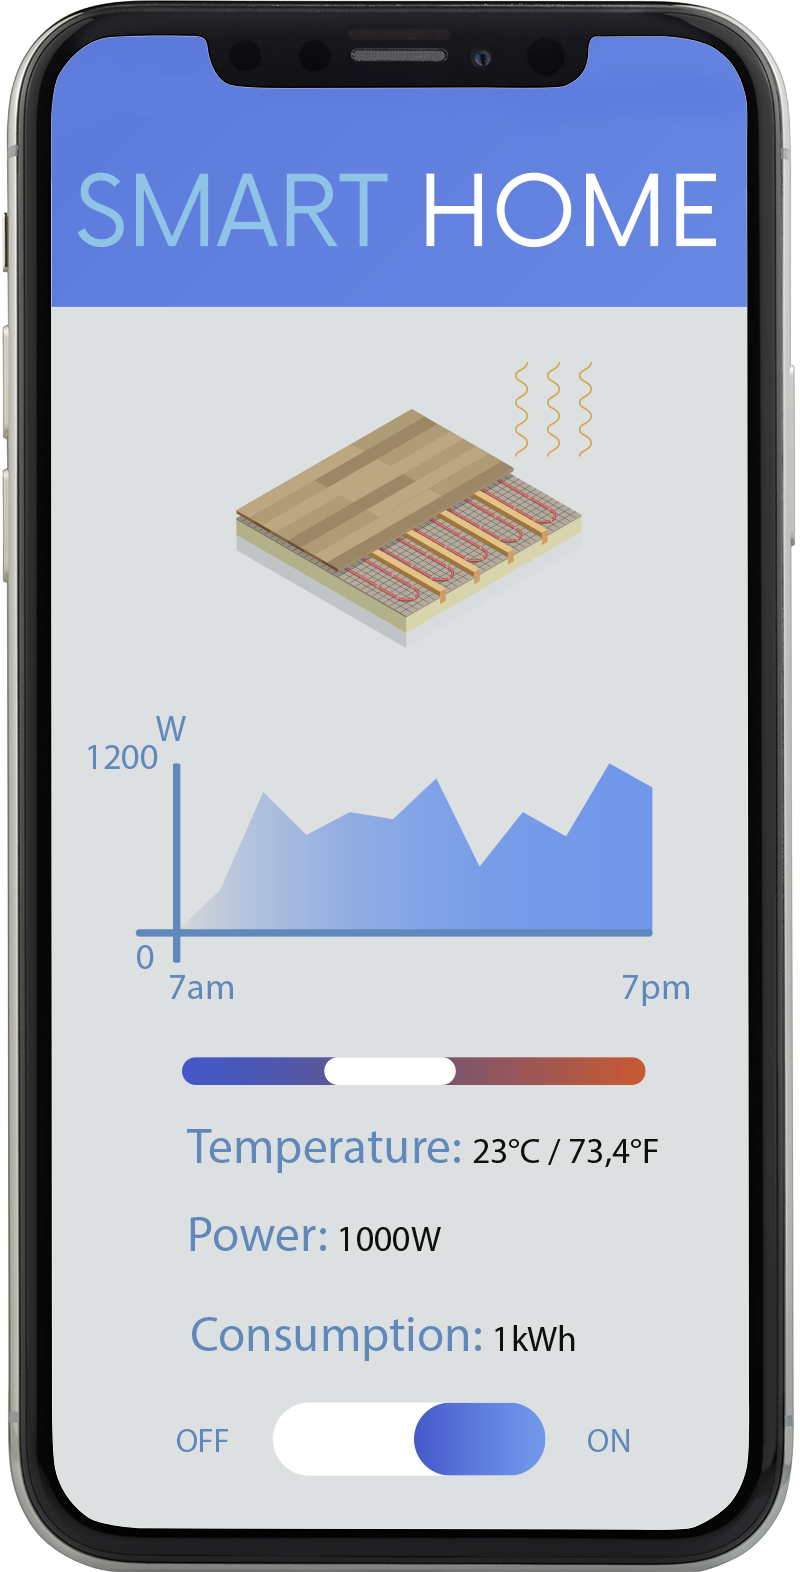 Smartphone shows how to control underfloor heating